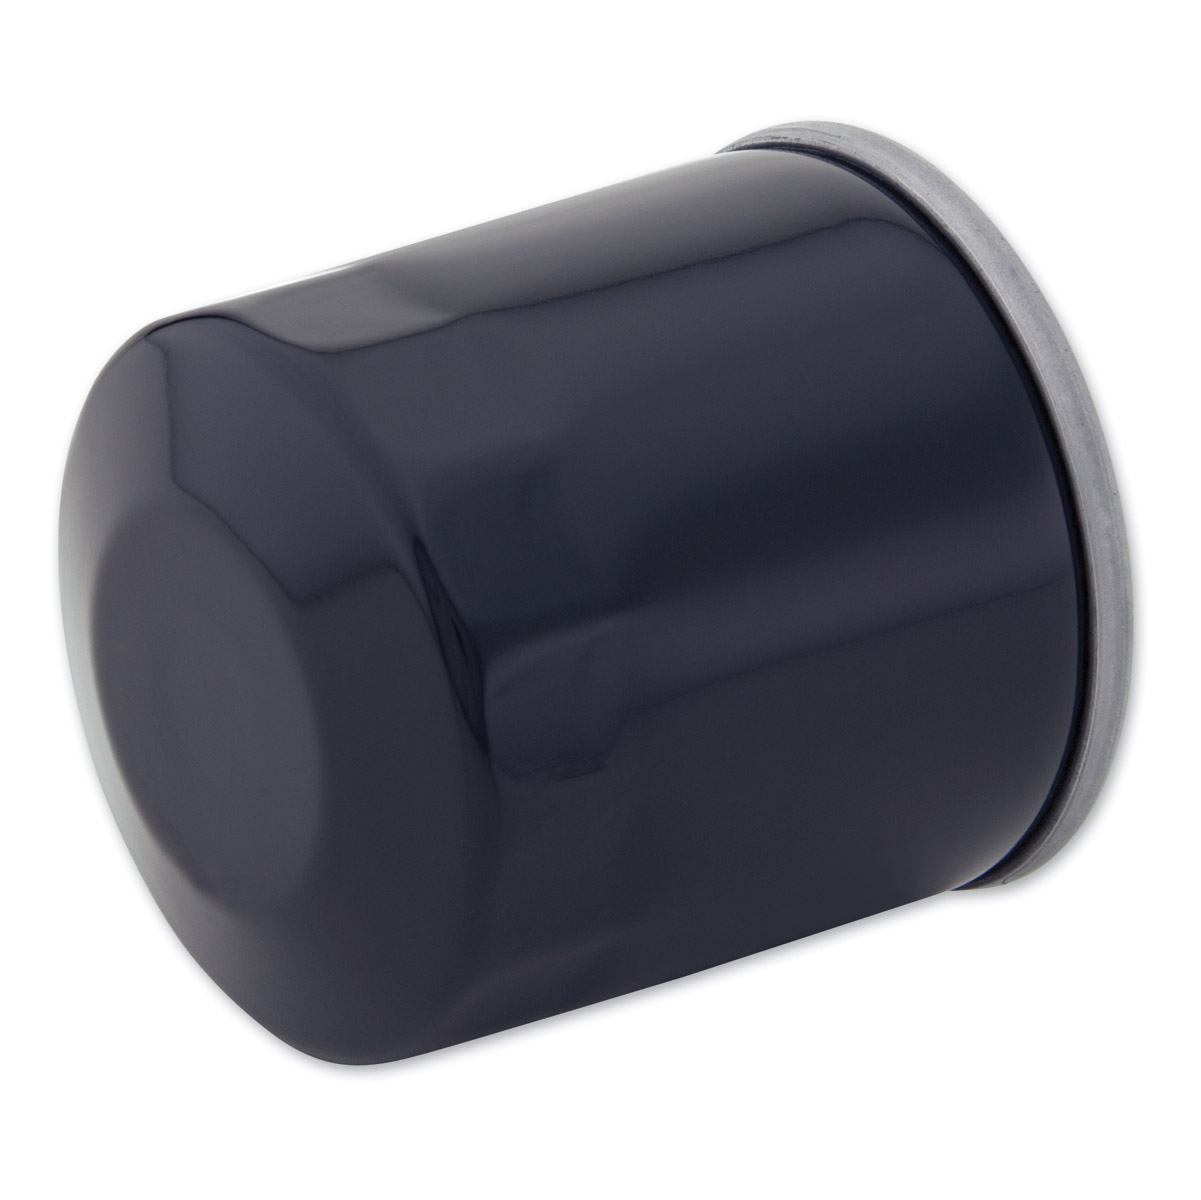 J&P Cycles® Black Oil filter for Jardine Oil Filter Relocation Kit